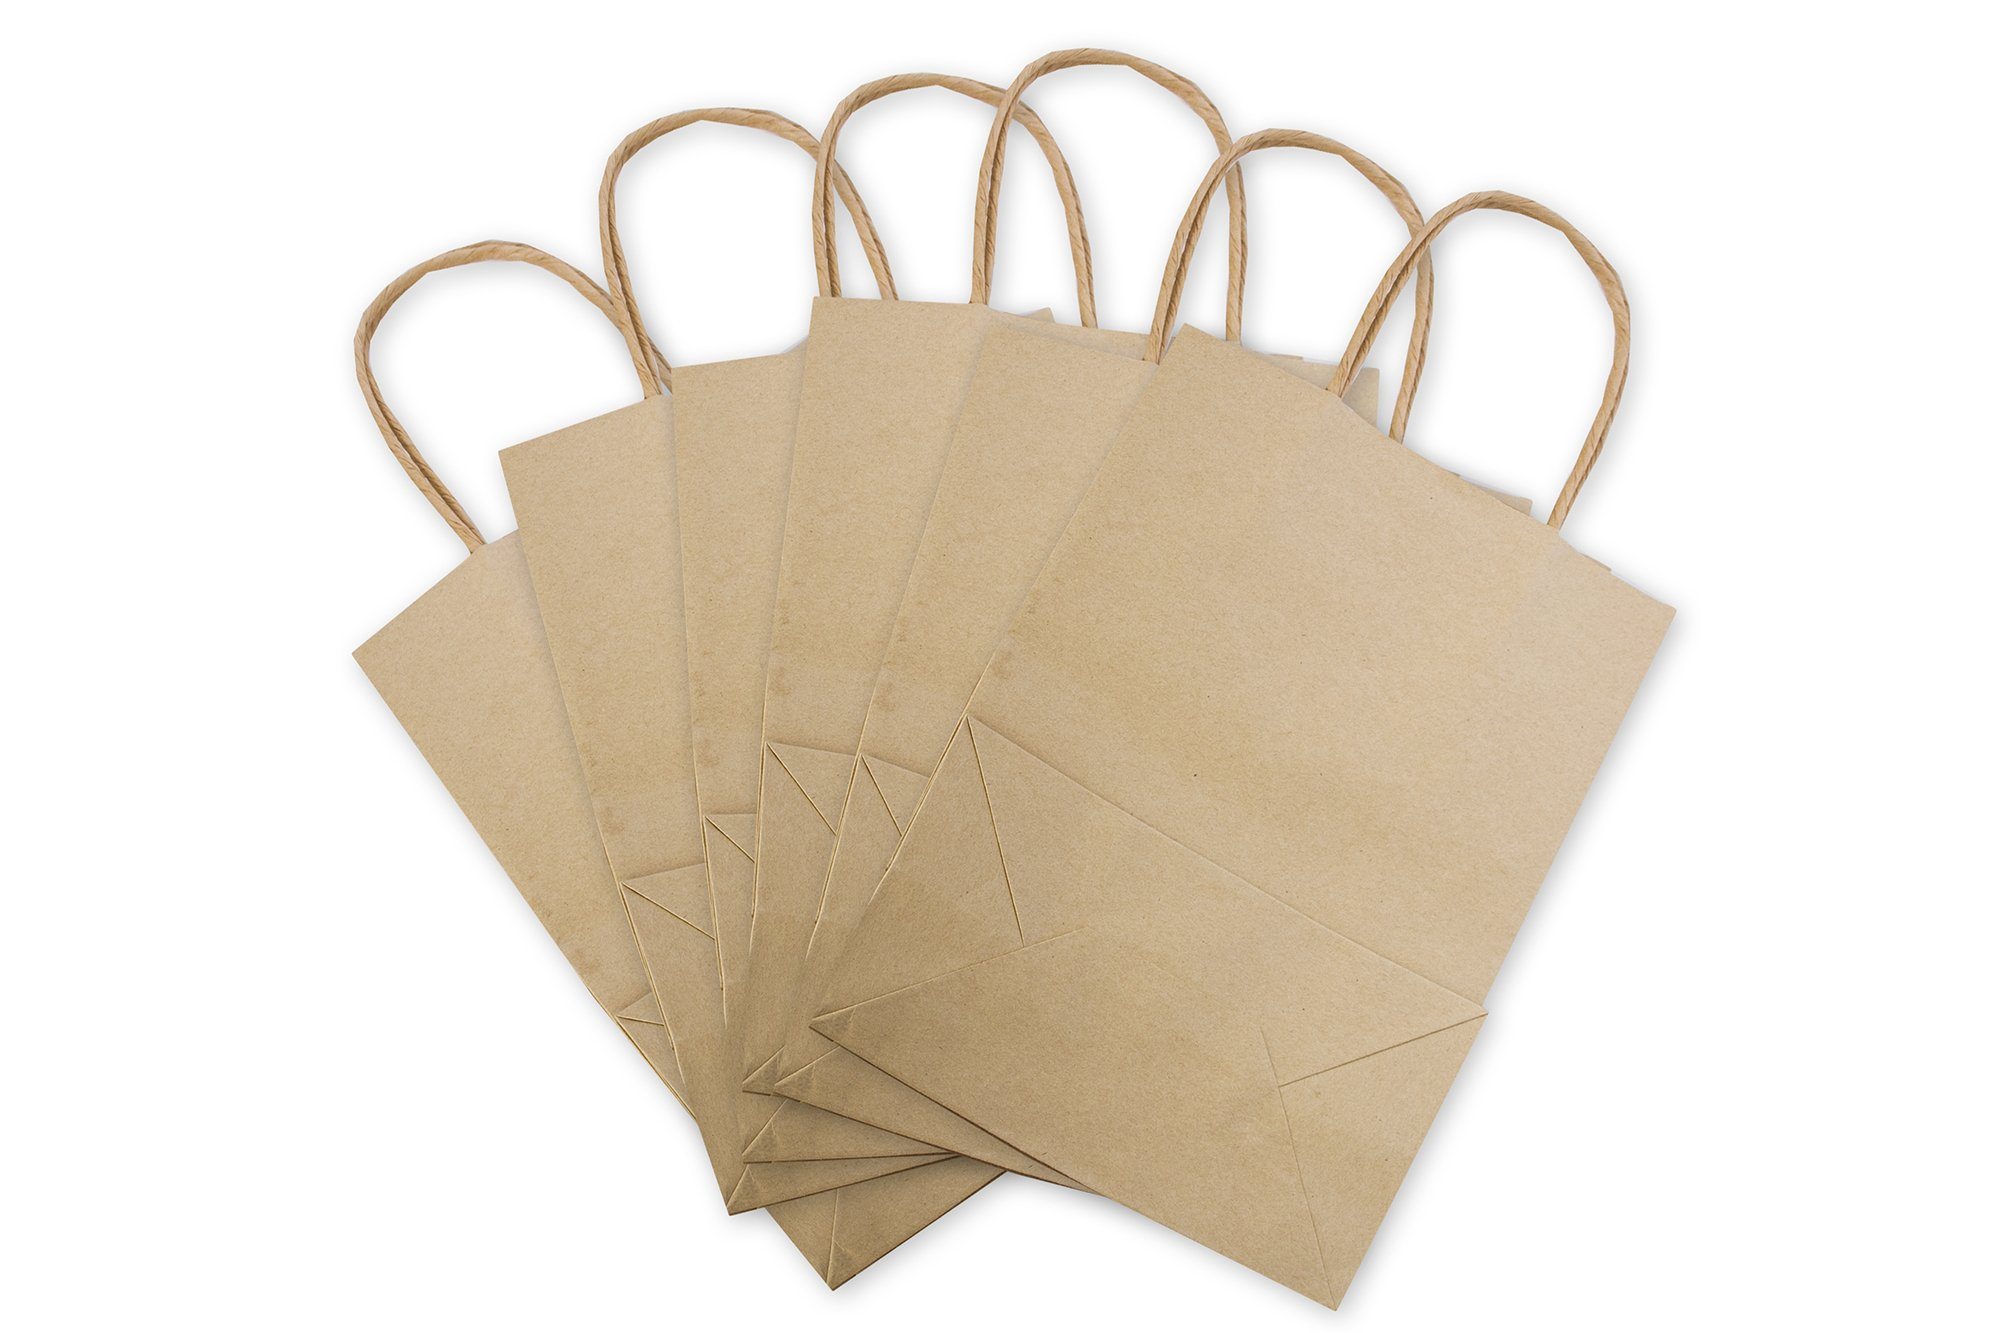 100 pcs vintage brown kraft paper bags with handles handle for Handles for bags craft